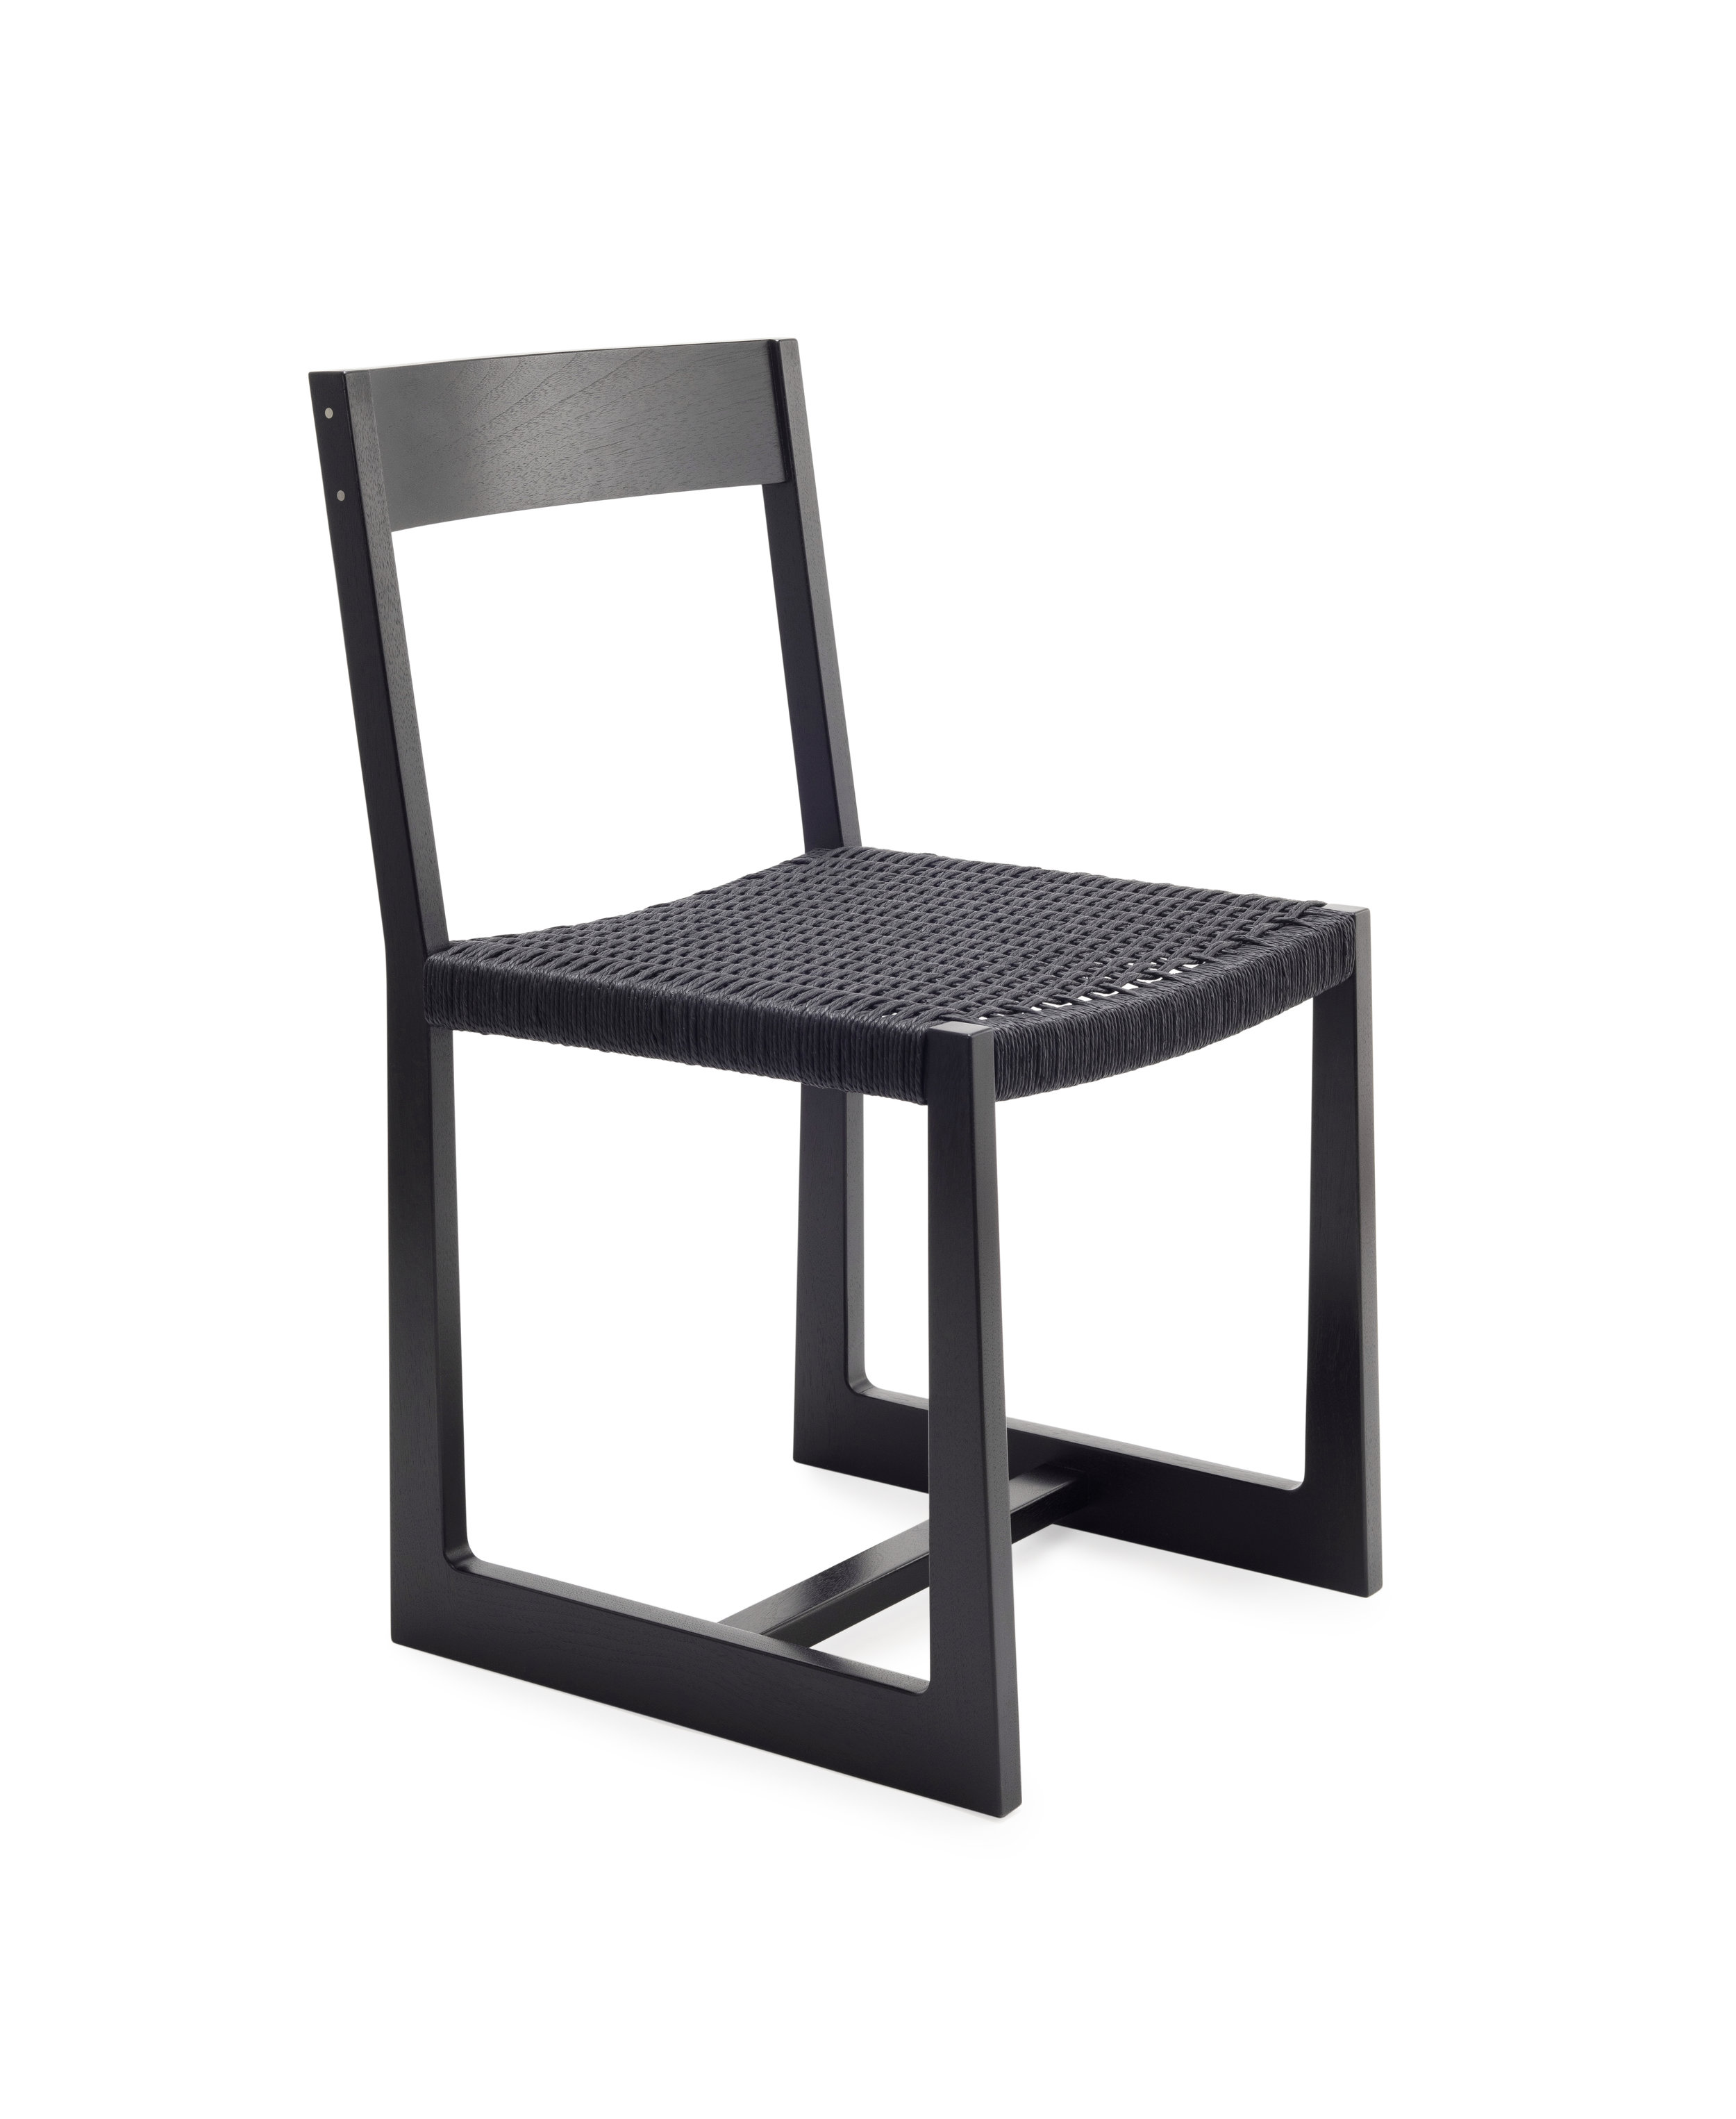 MATTEAWAN CHAIR